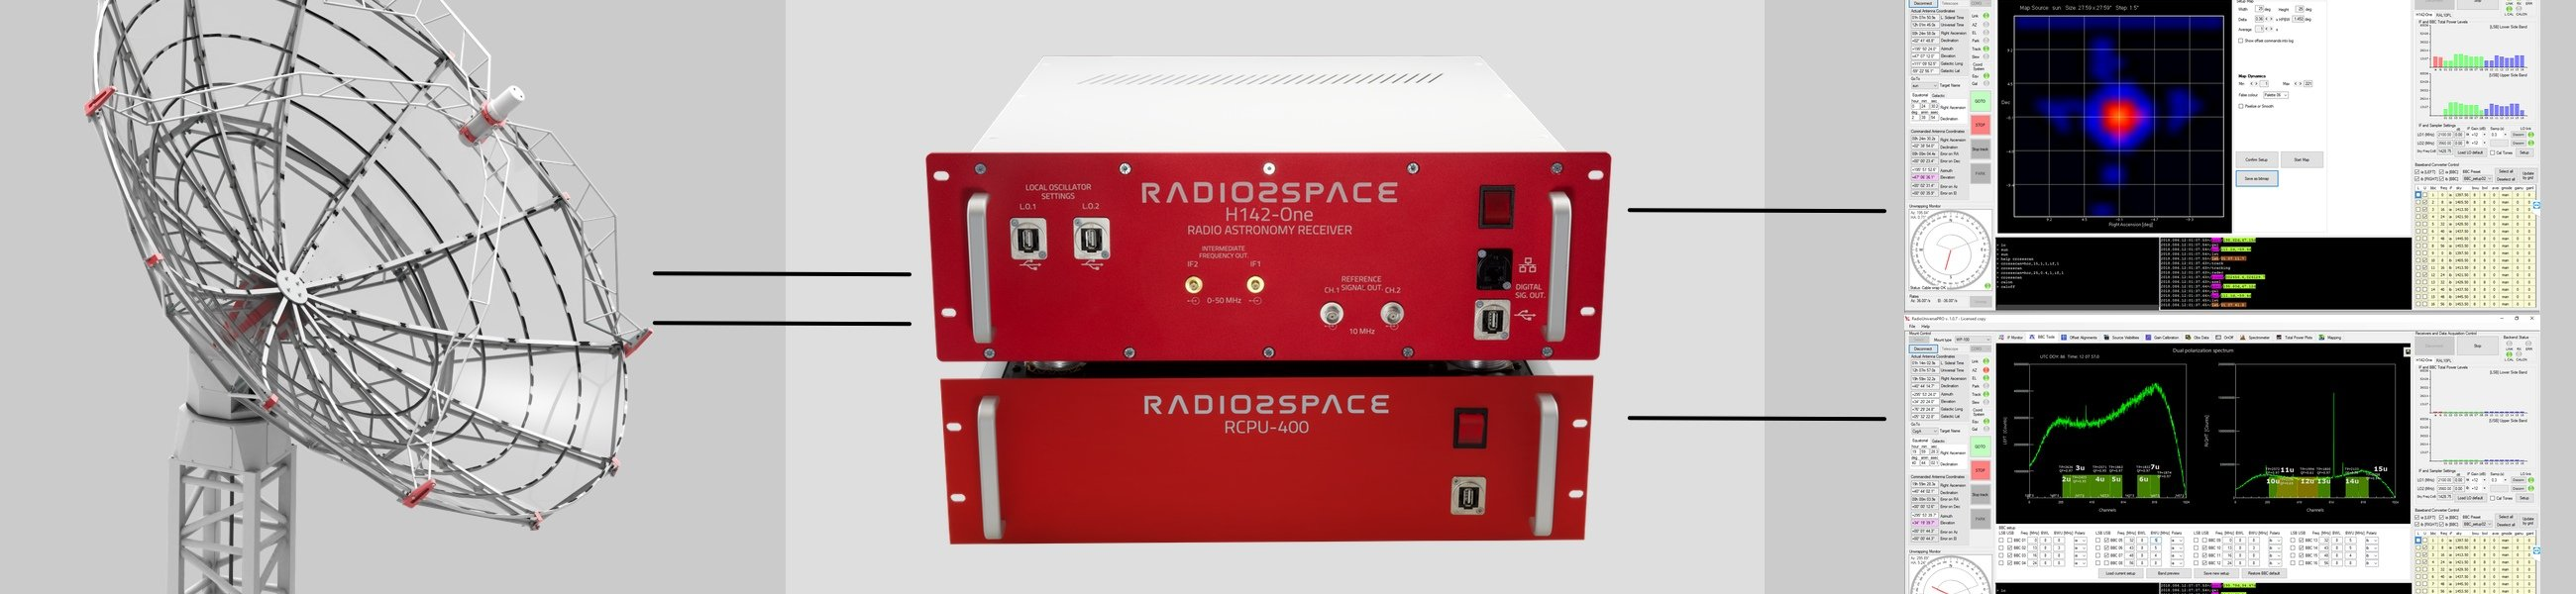 Radio2Space: radio telescopes technologies